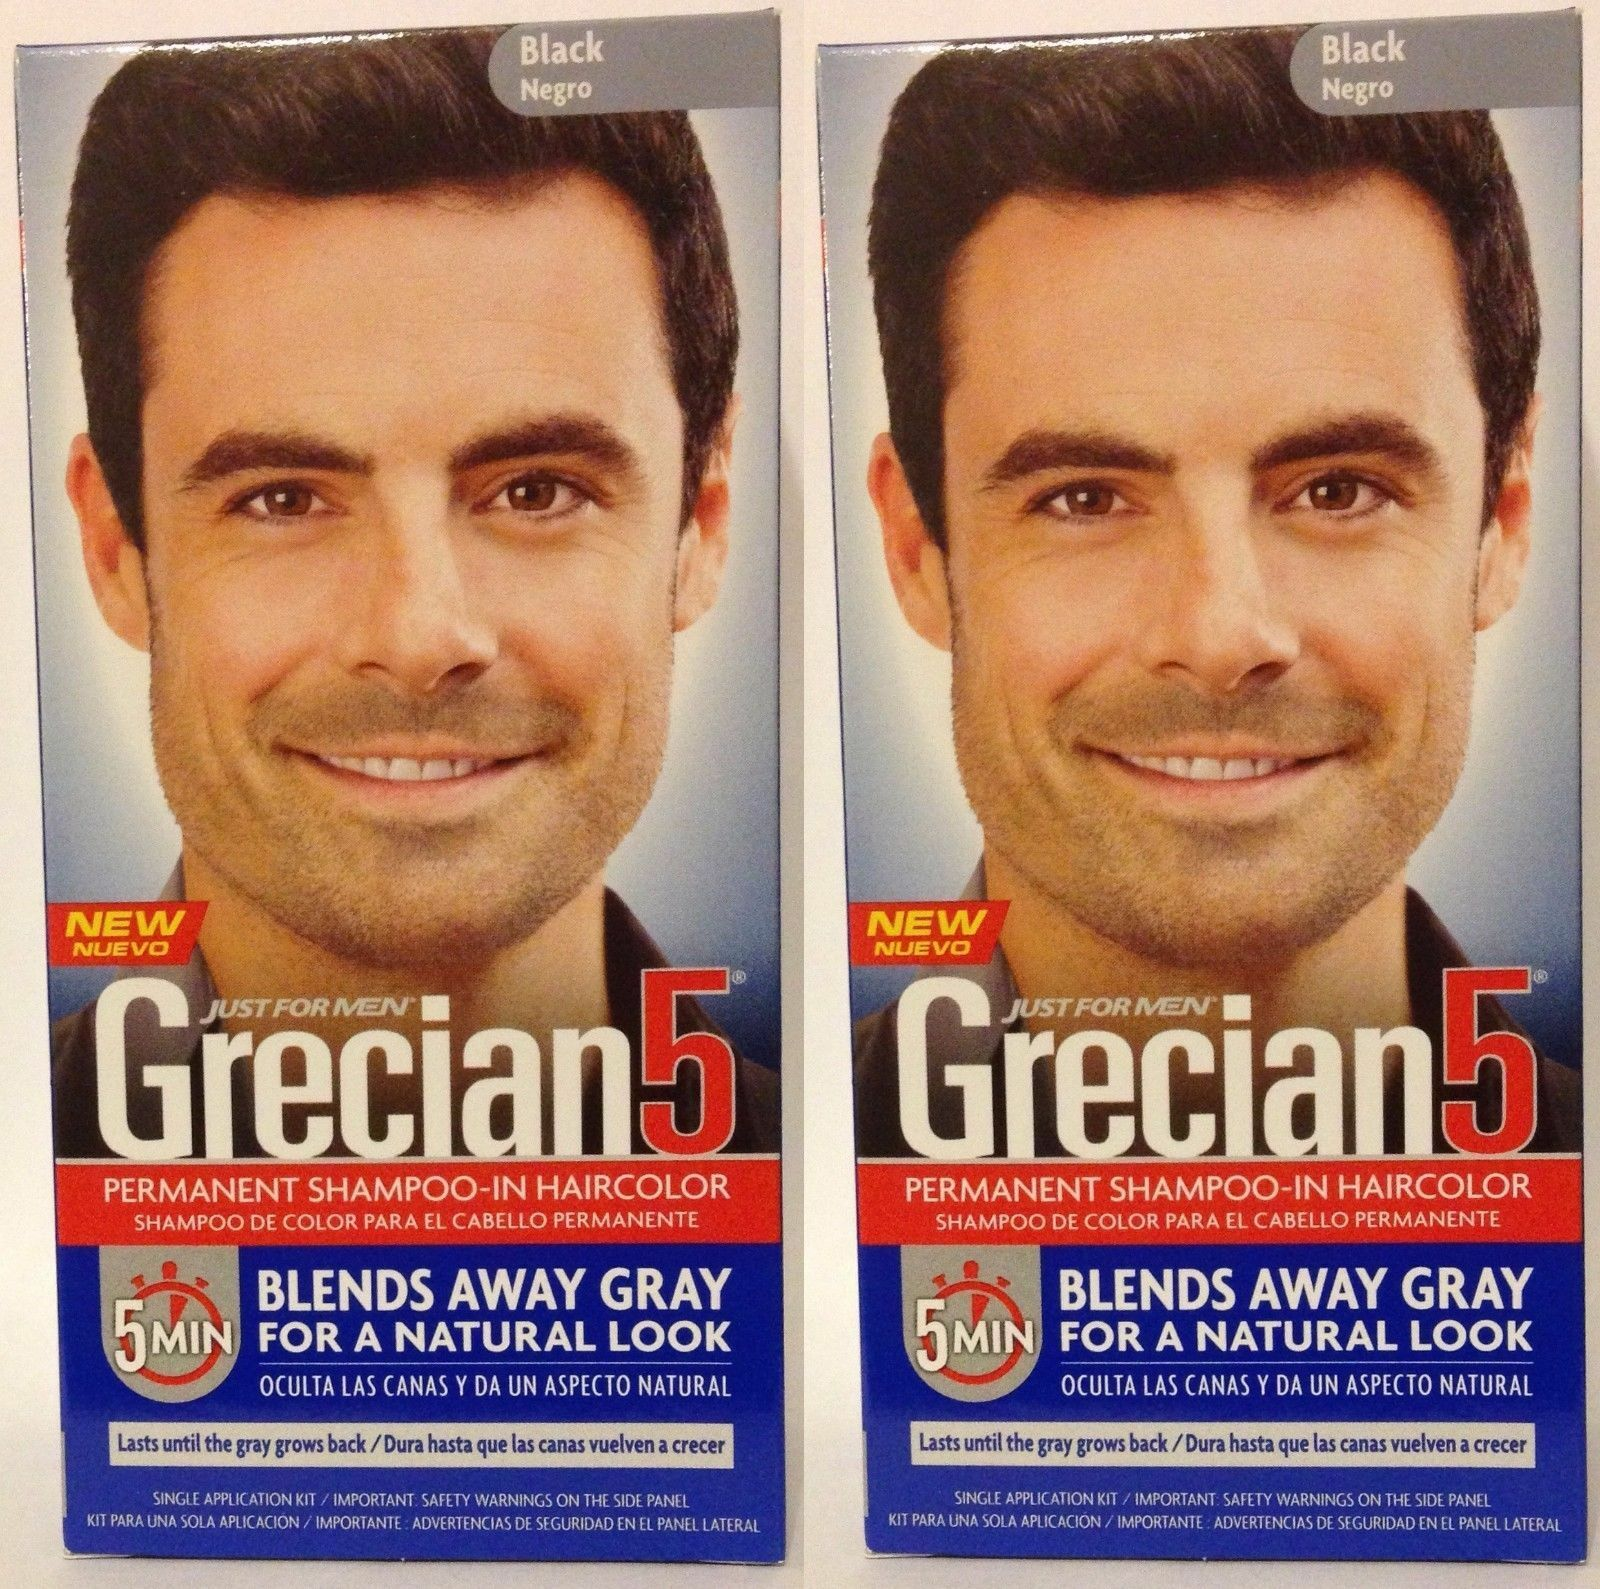 Just For Men Grecian 5 Hair Shampoo In Hair Color Jet Black 2